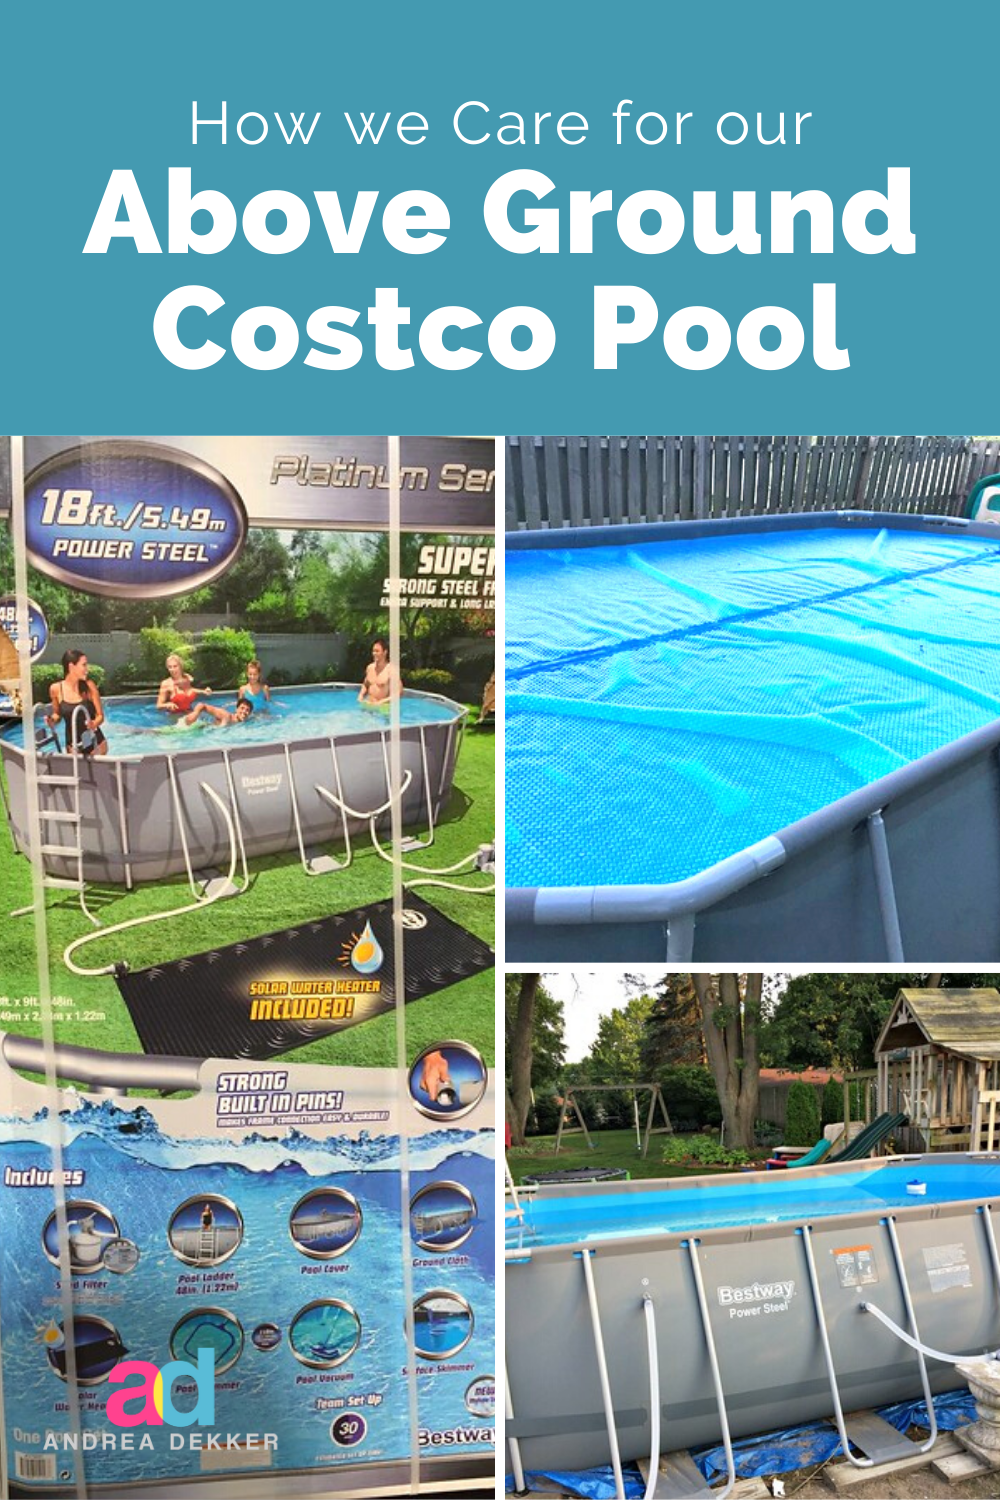 Our Costco Pool Everything You Need To Know In 2020 Pool Cleaning Tips Pool Cleaning Pool